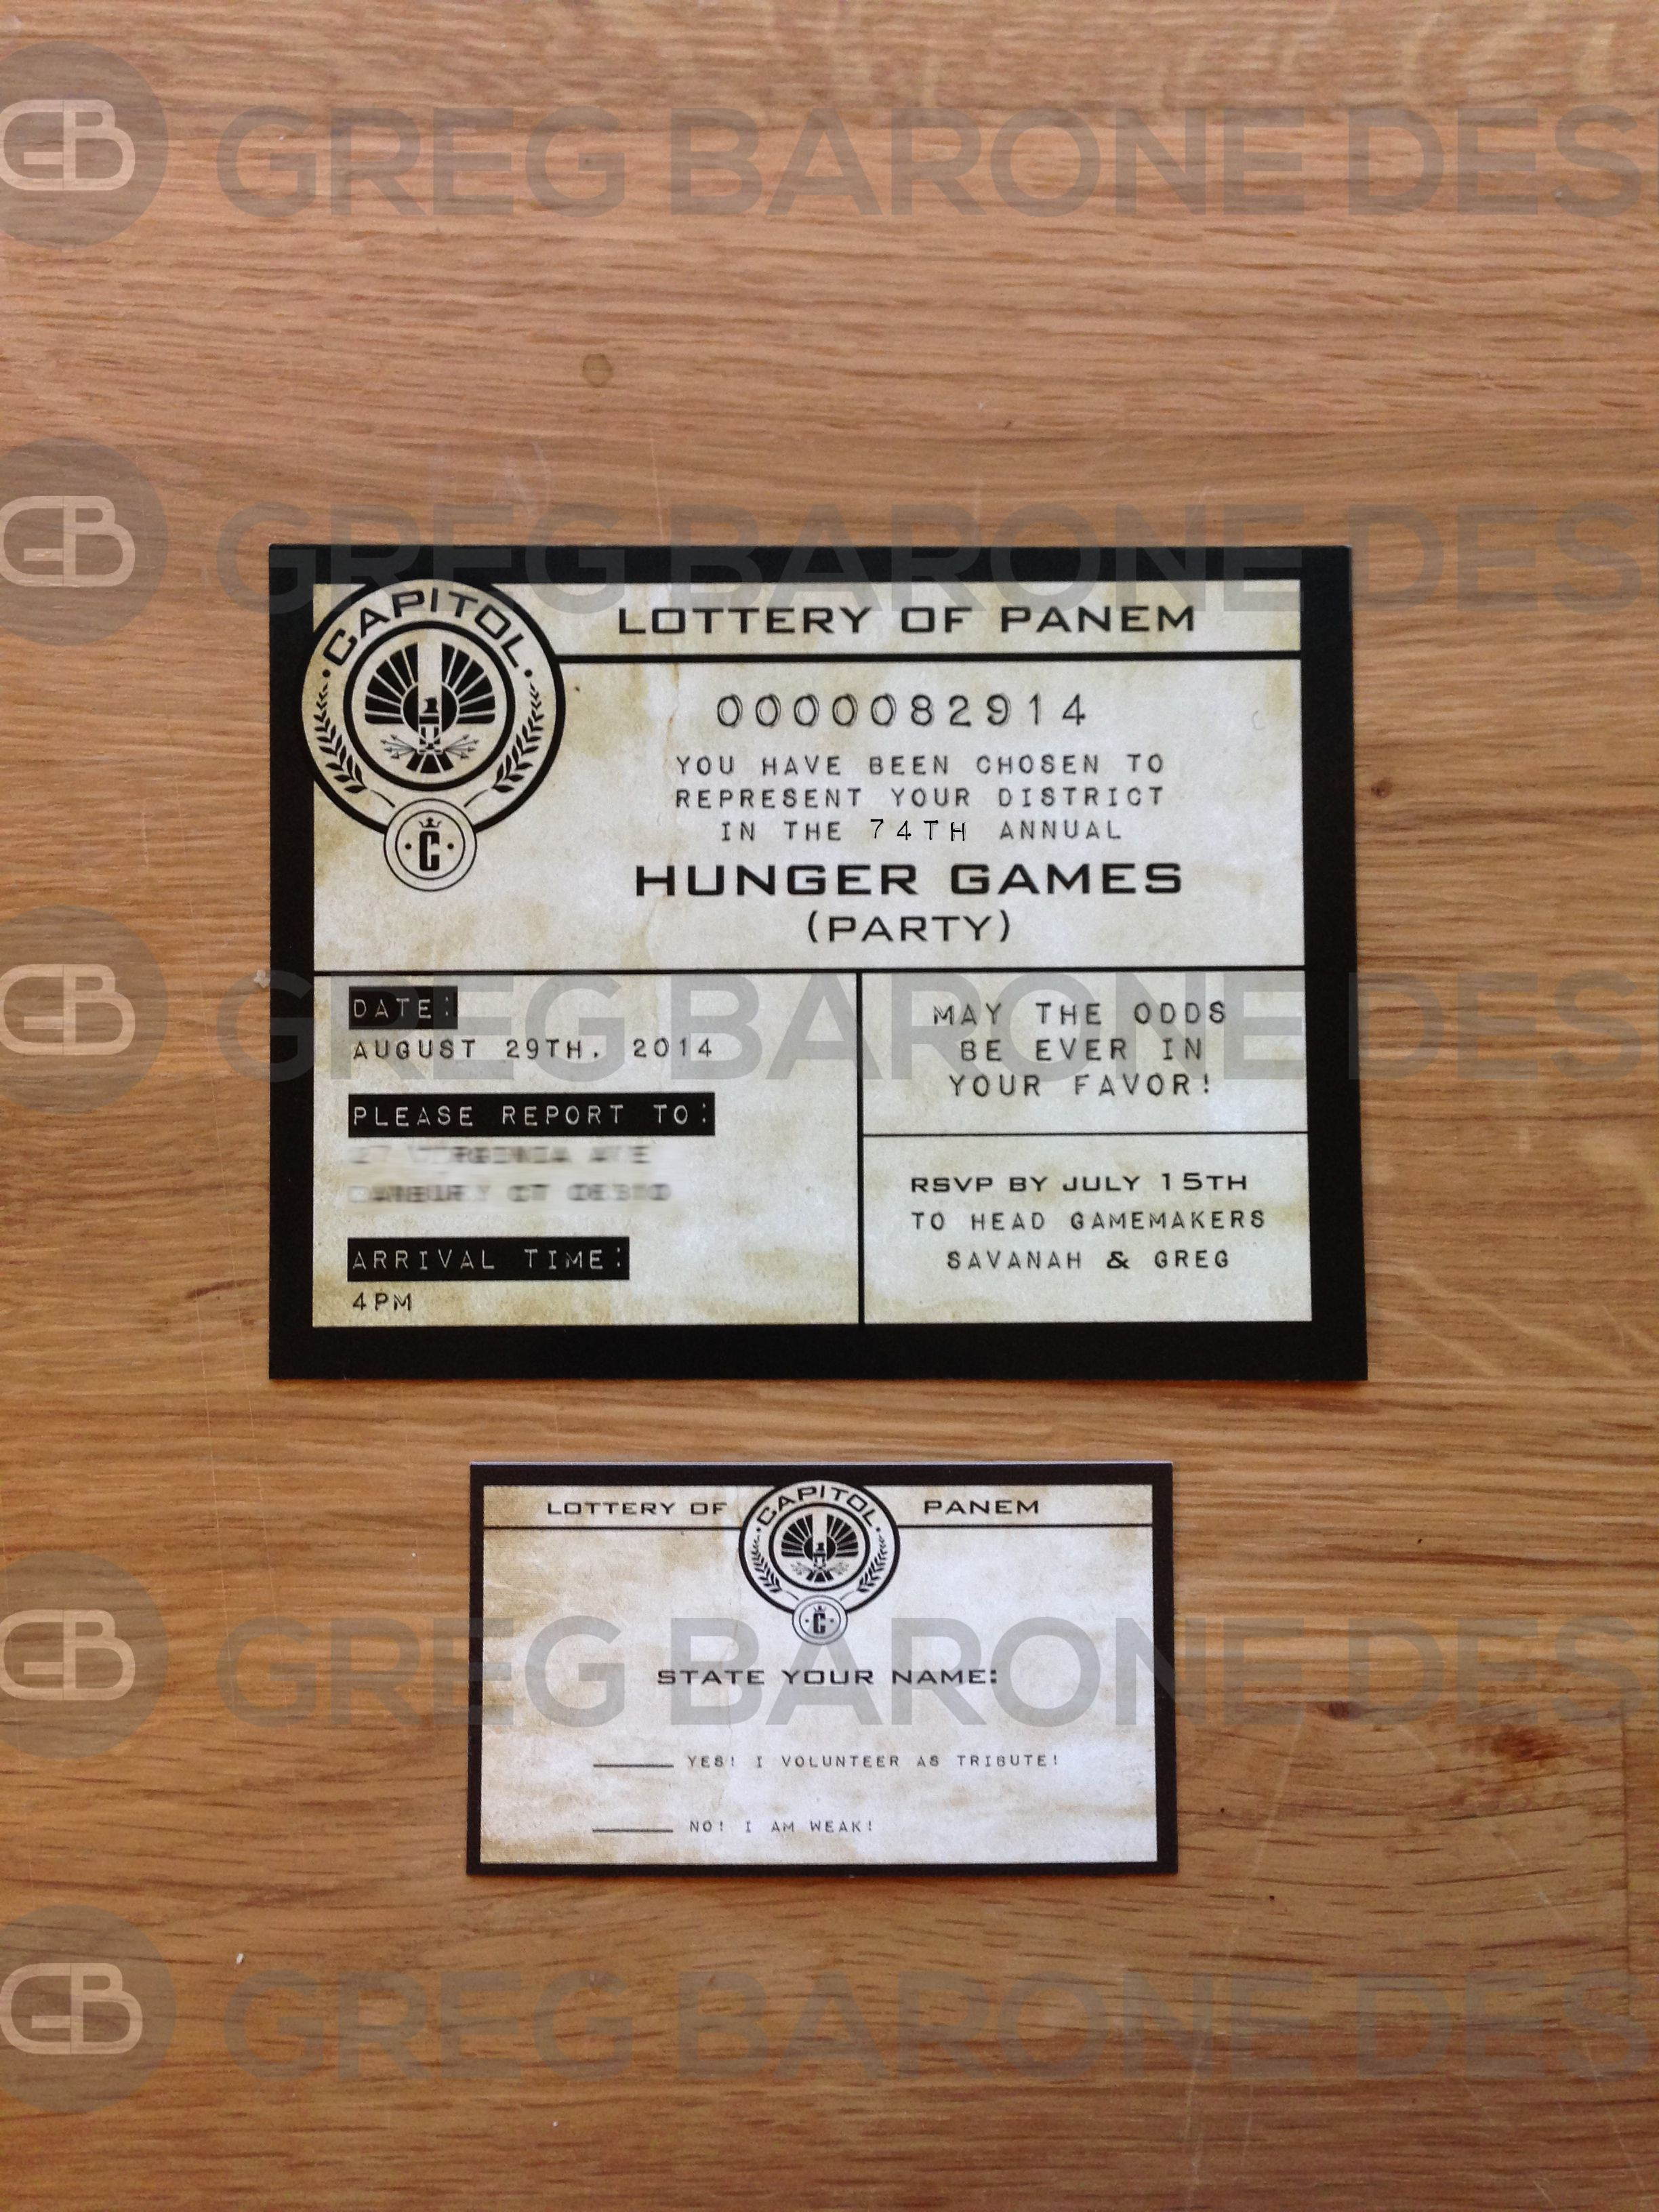 Hunger Games Party Invitation Rsvp Card Greg Barone Design